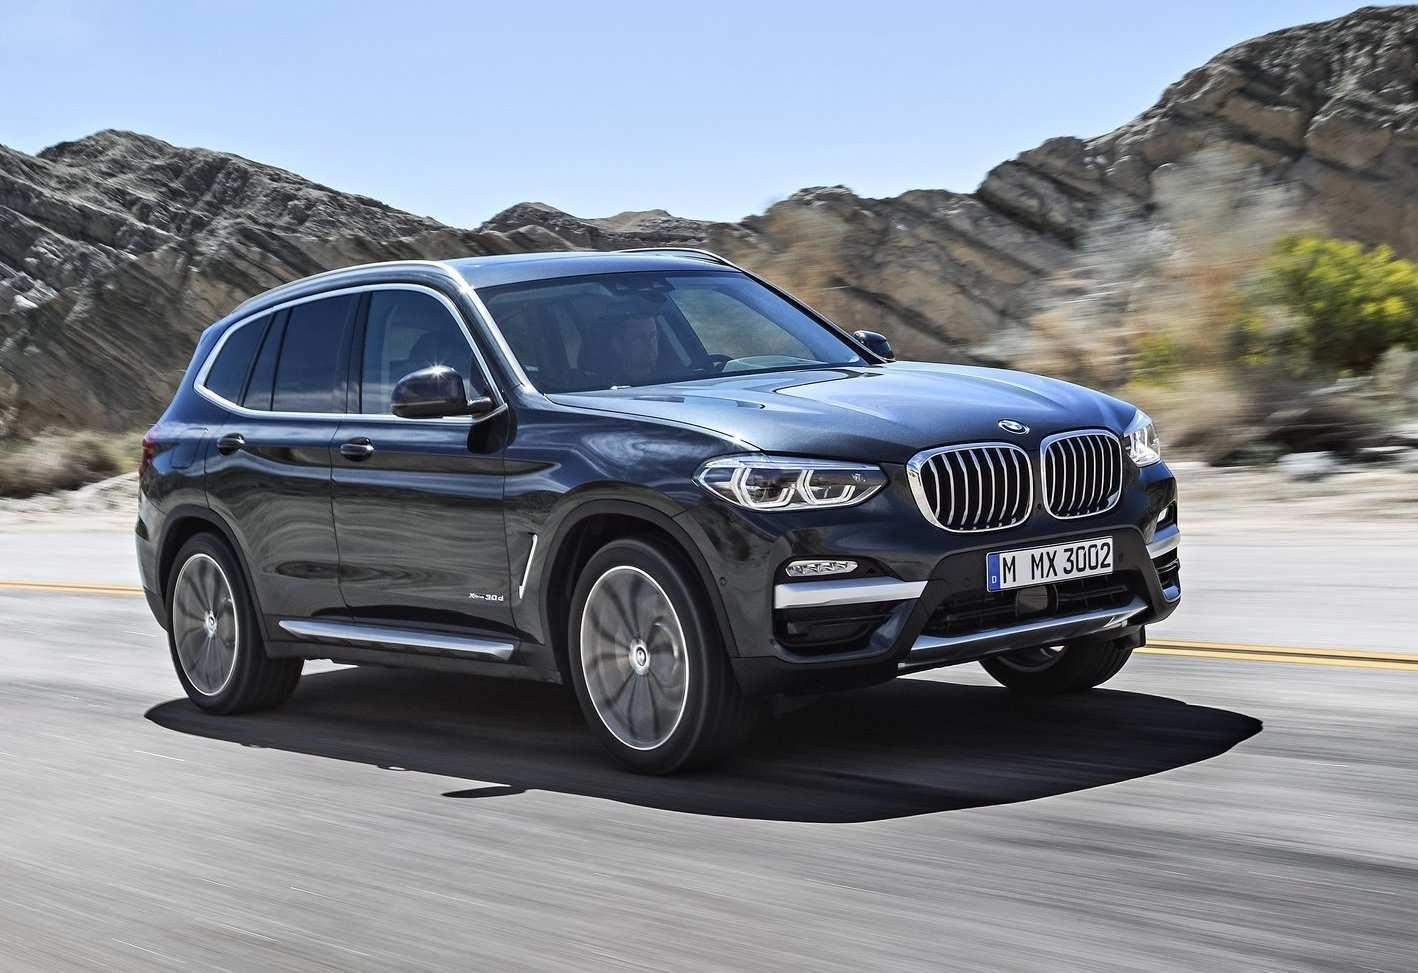 33 All New 2020 BMW Exterior Exterior Picture with 2020 BMW Exterior Exterior